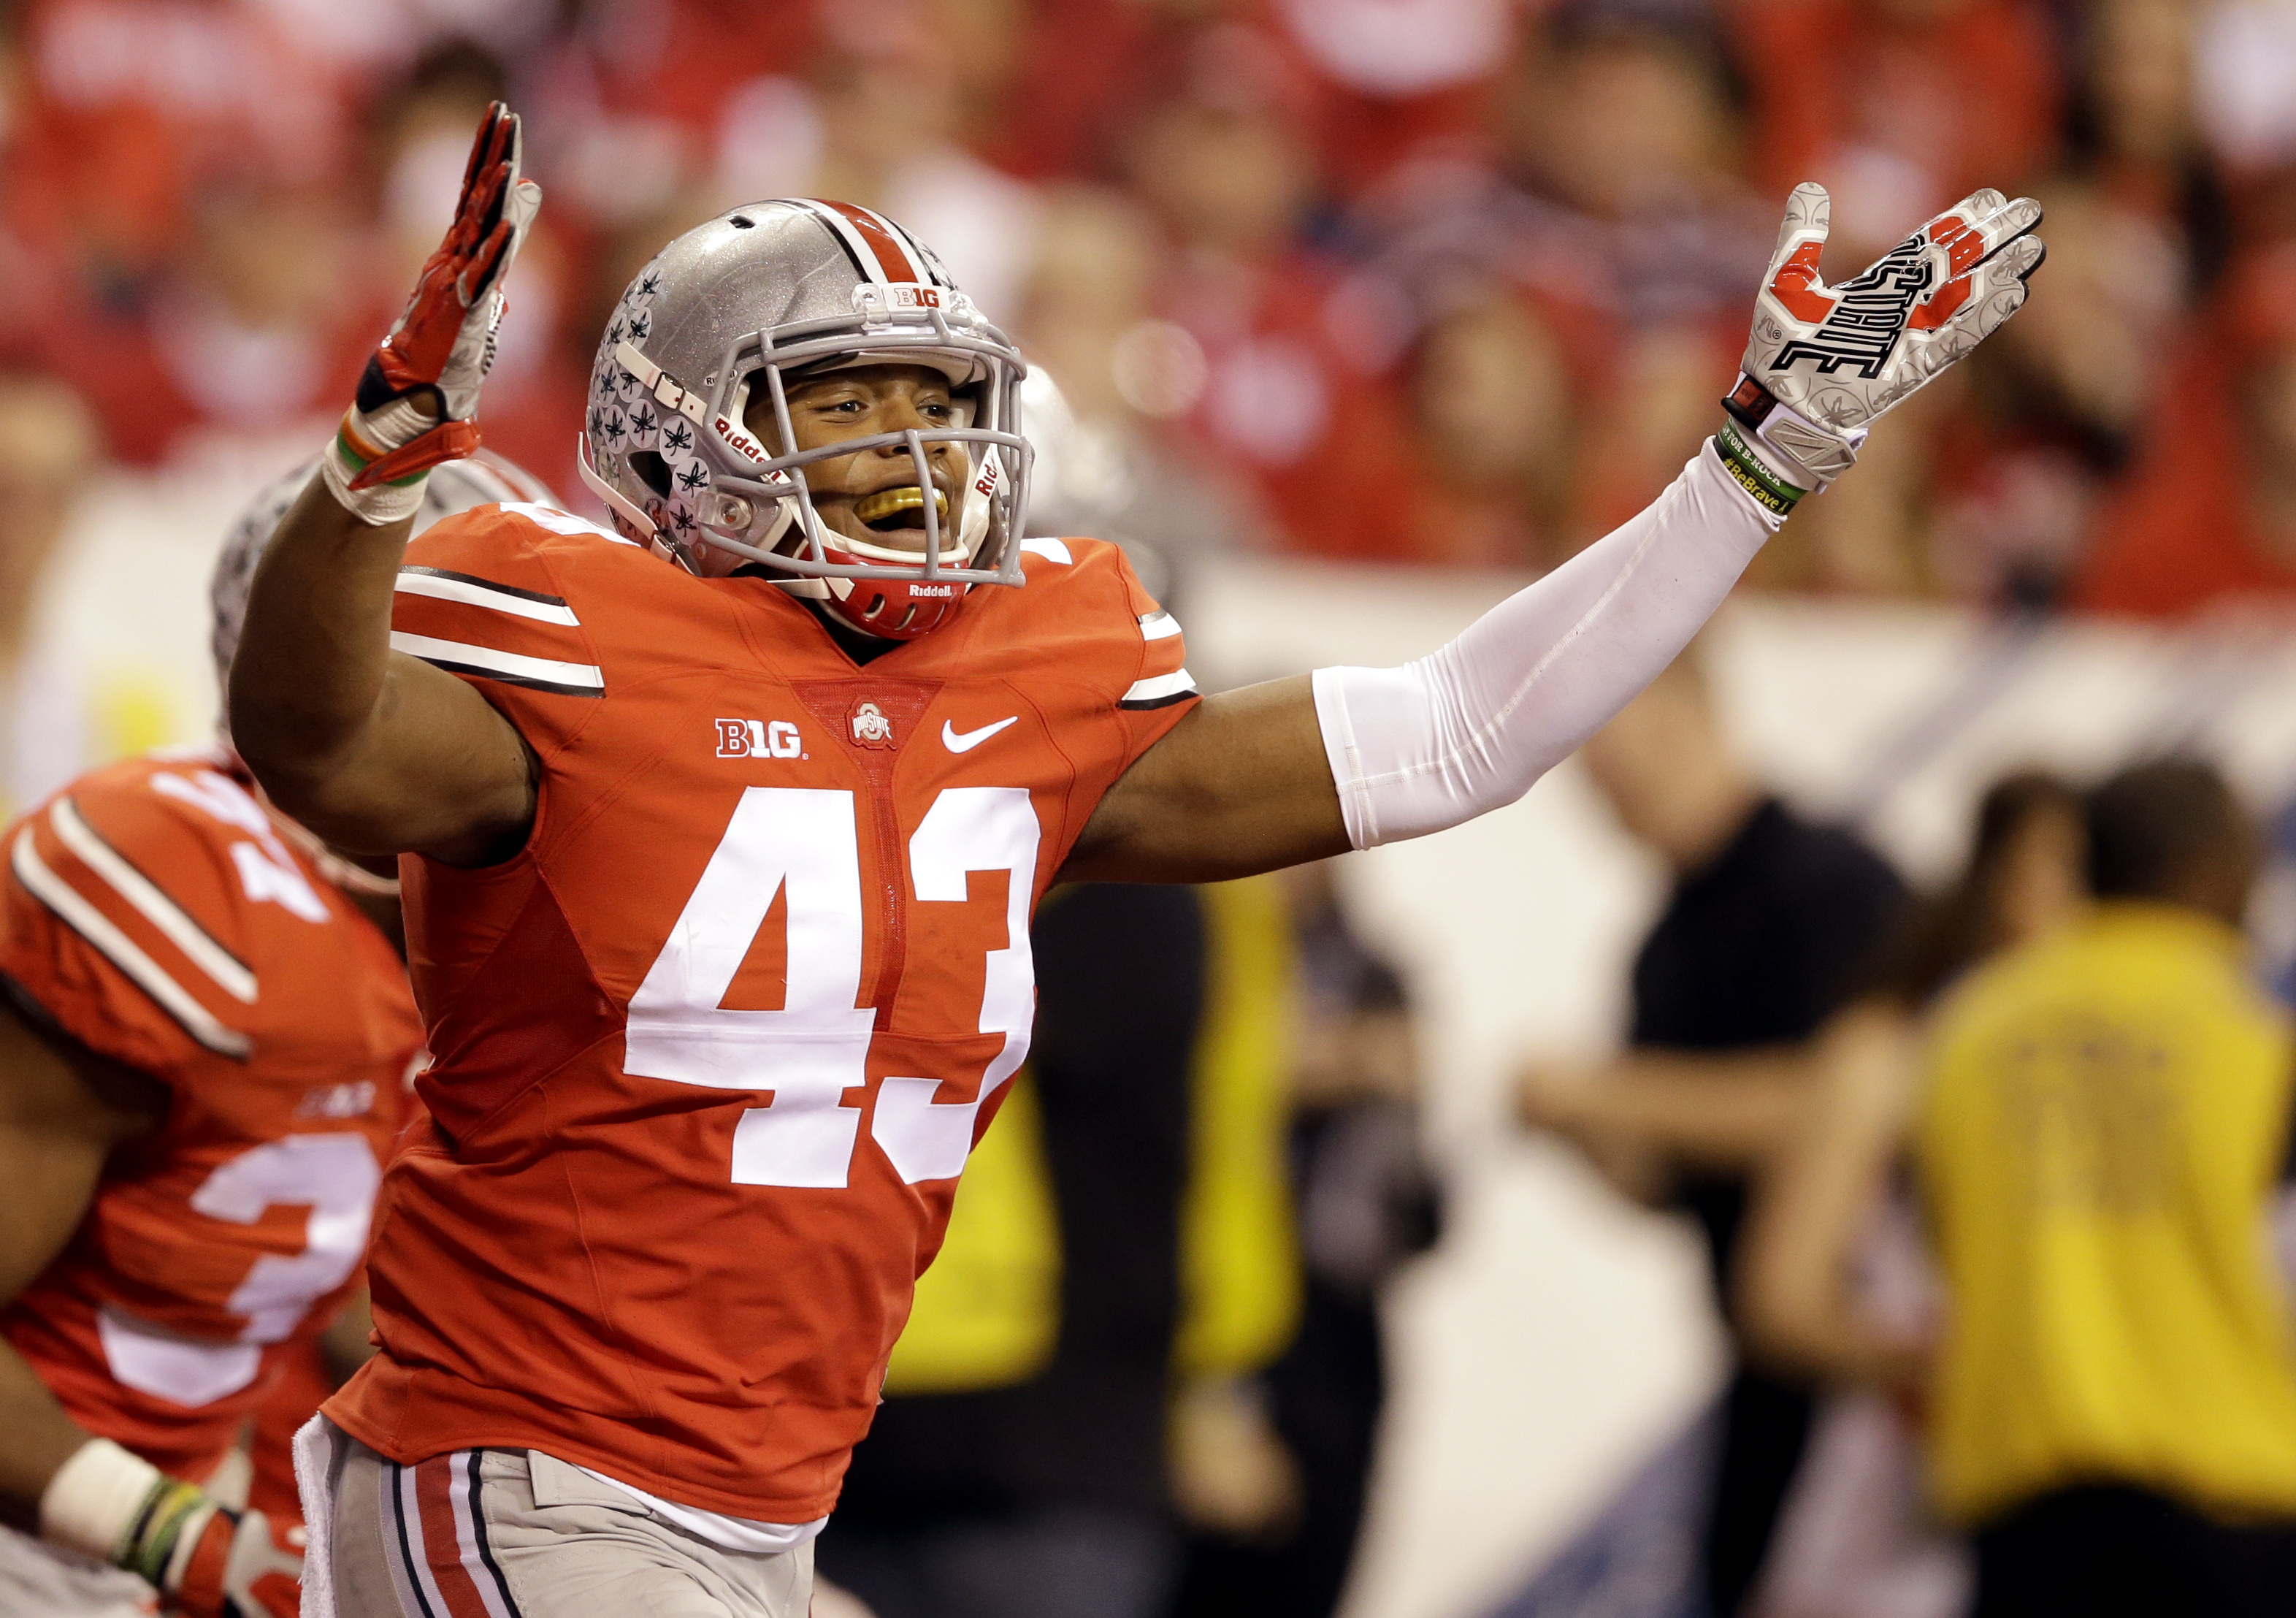 FILE - In this Dec. 6, 2014 file photo, Ohio State linebacker Darron Lee celebrates after teammate Joey Bosa picked up a fumble by Wisconsin running back Melvin Gordon and ran it back for a touchdown during the first half of the Big Ten Conference champio